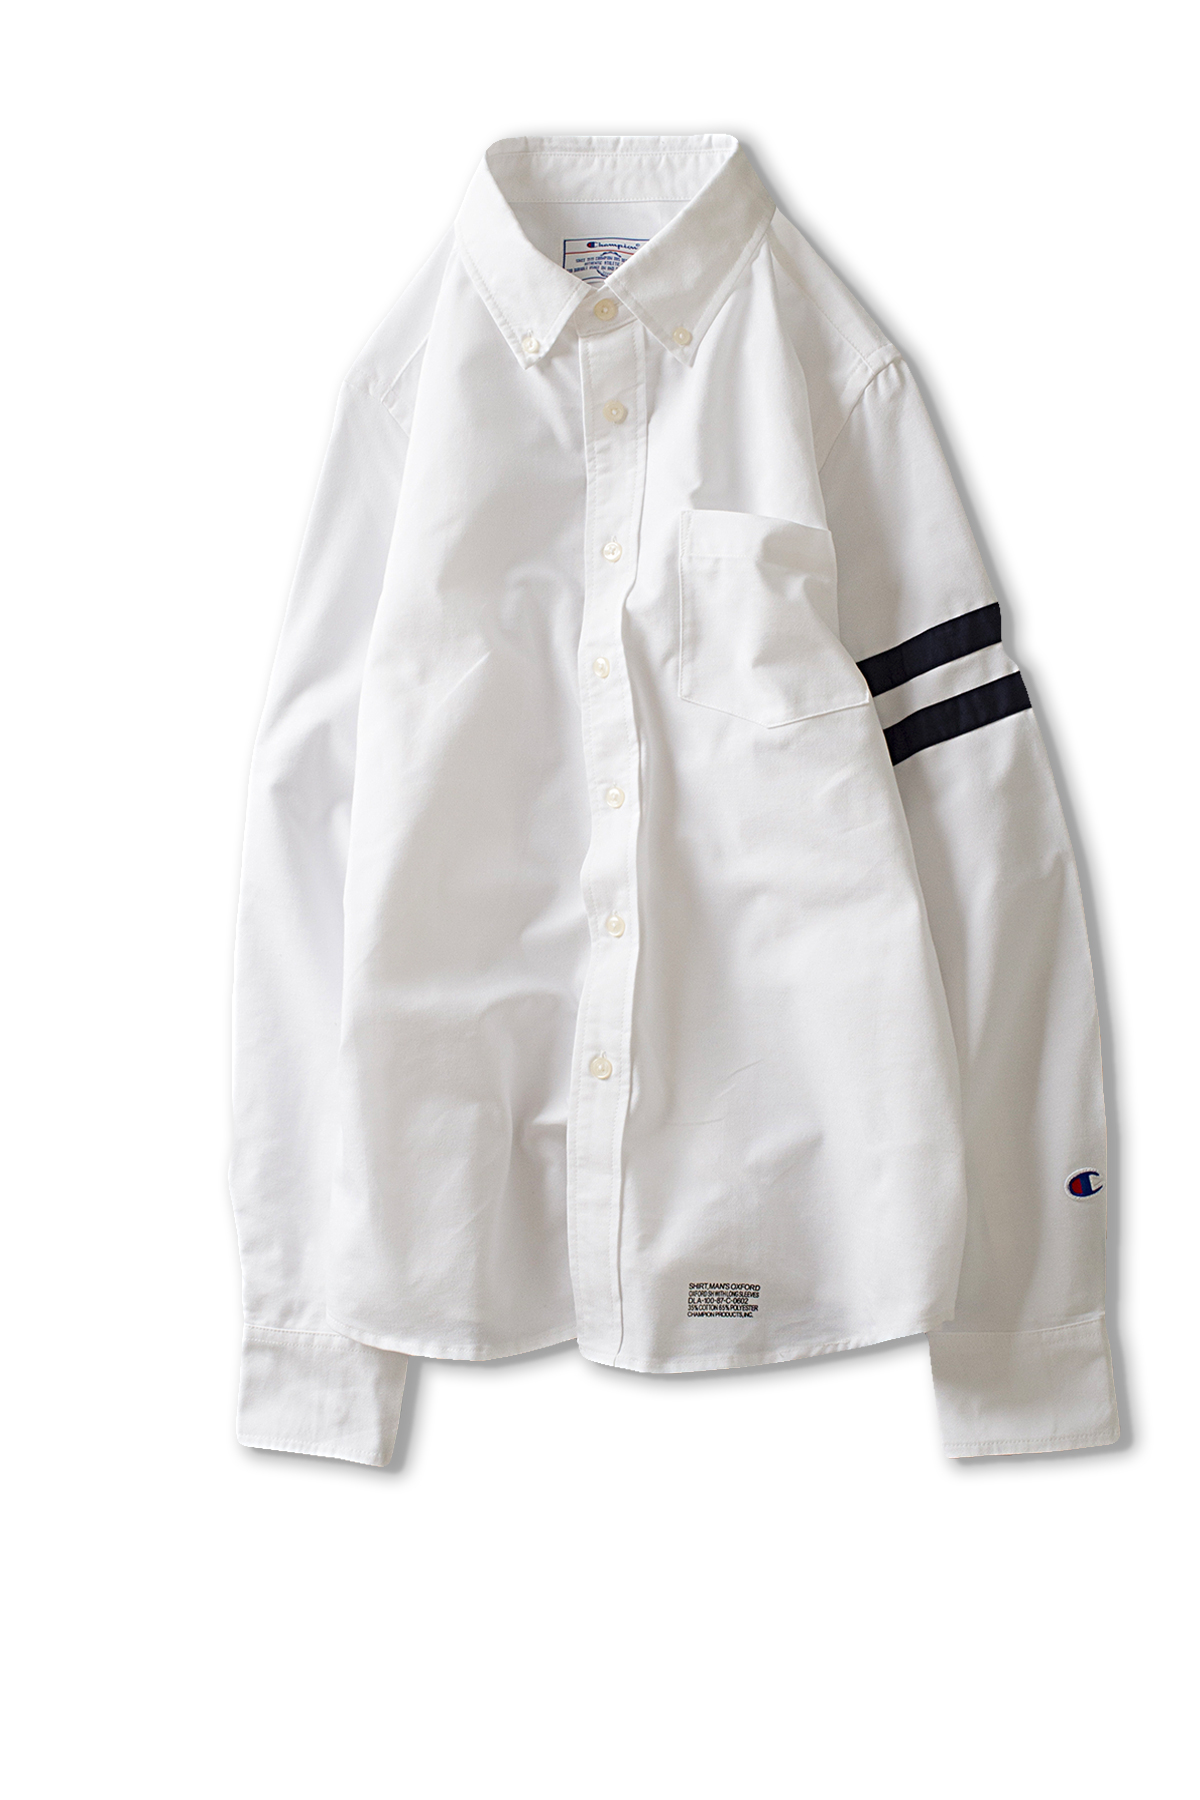 Champion : Campus Long Sleeve Button Down Shirt (White)